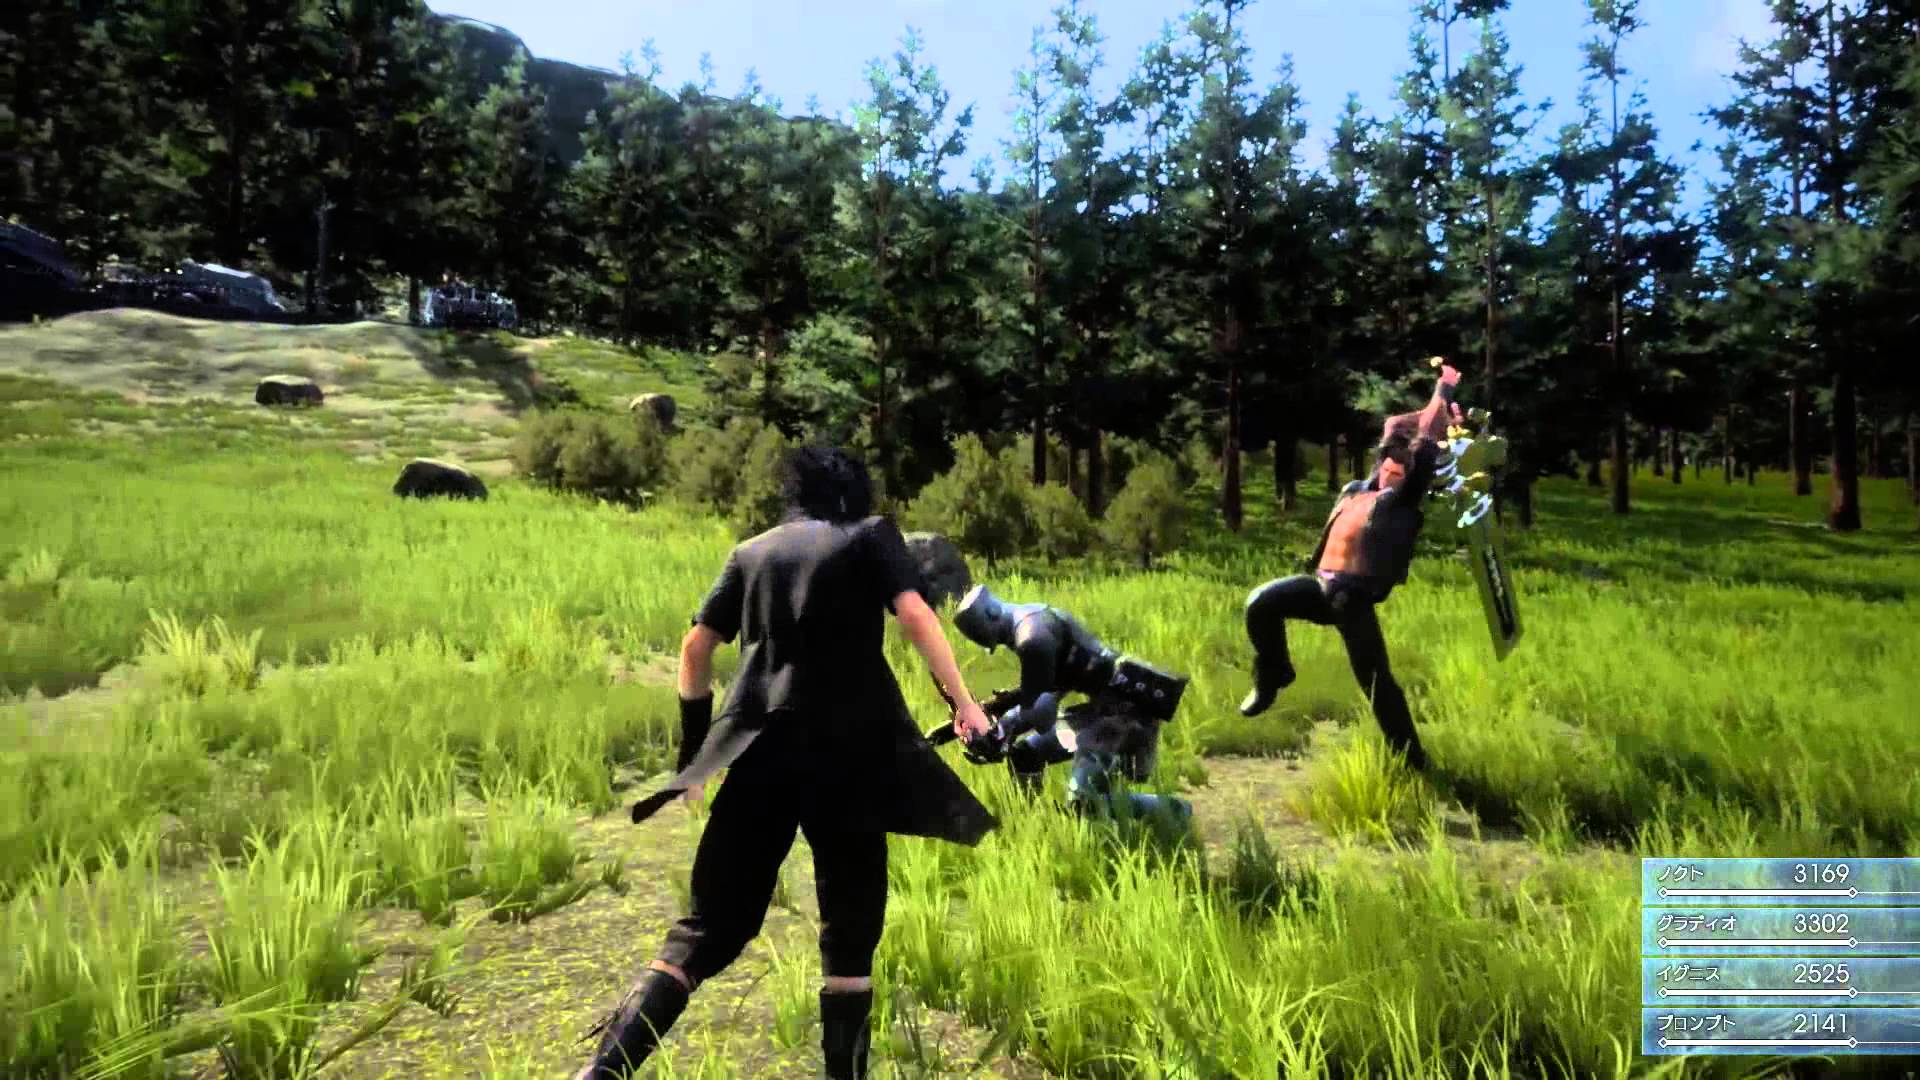 brand-new-final-fantasy-xv-tgs-trailer-shows-more-gameplay-attack-of-the-fanboy